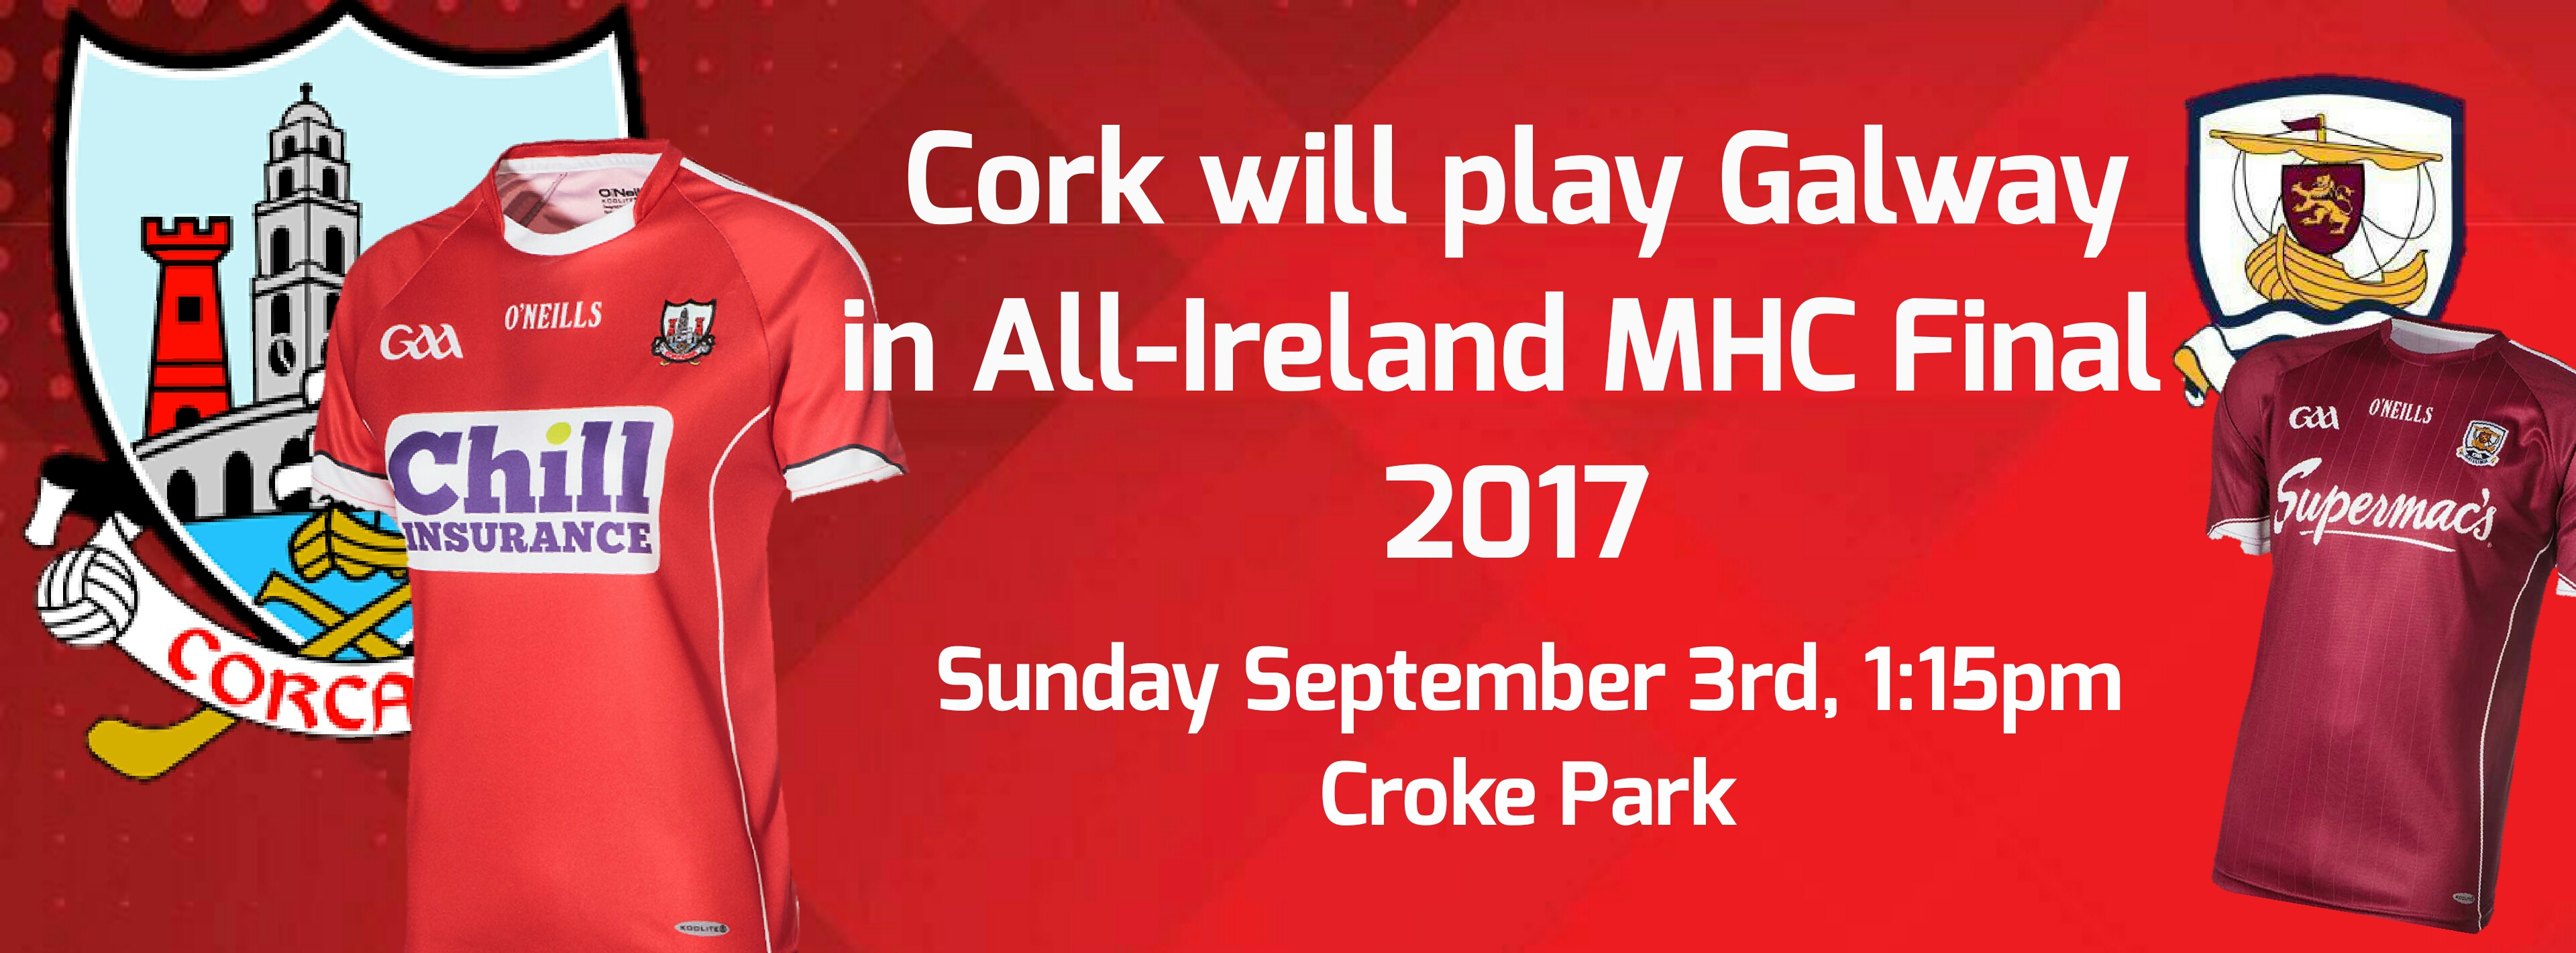 cbf894b8100a9 Cork Minor Hurlers will play Galway in the 2017 Minor Hurling Final 2017  Cork's path to the final saw them start their programme in the play-off  round as ...